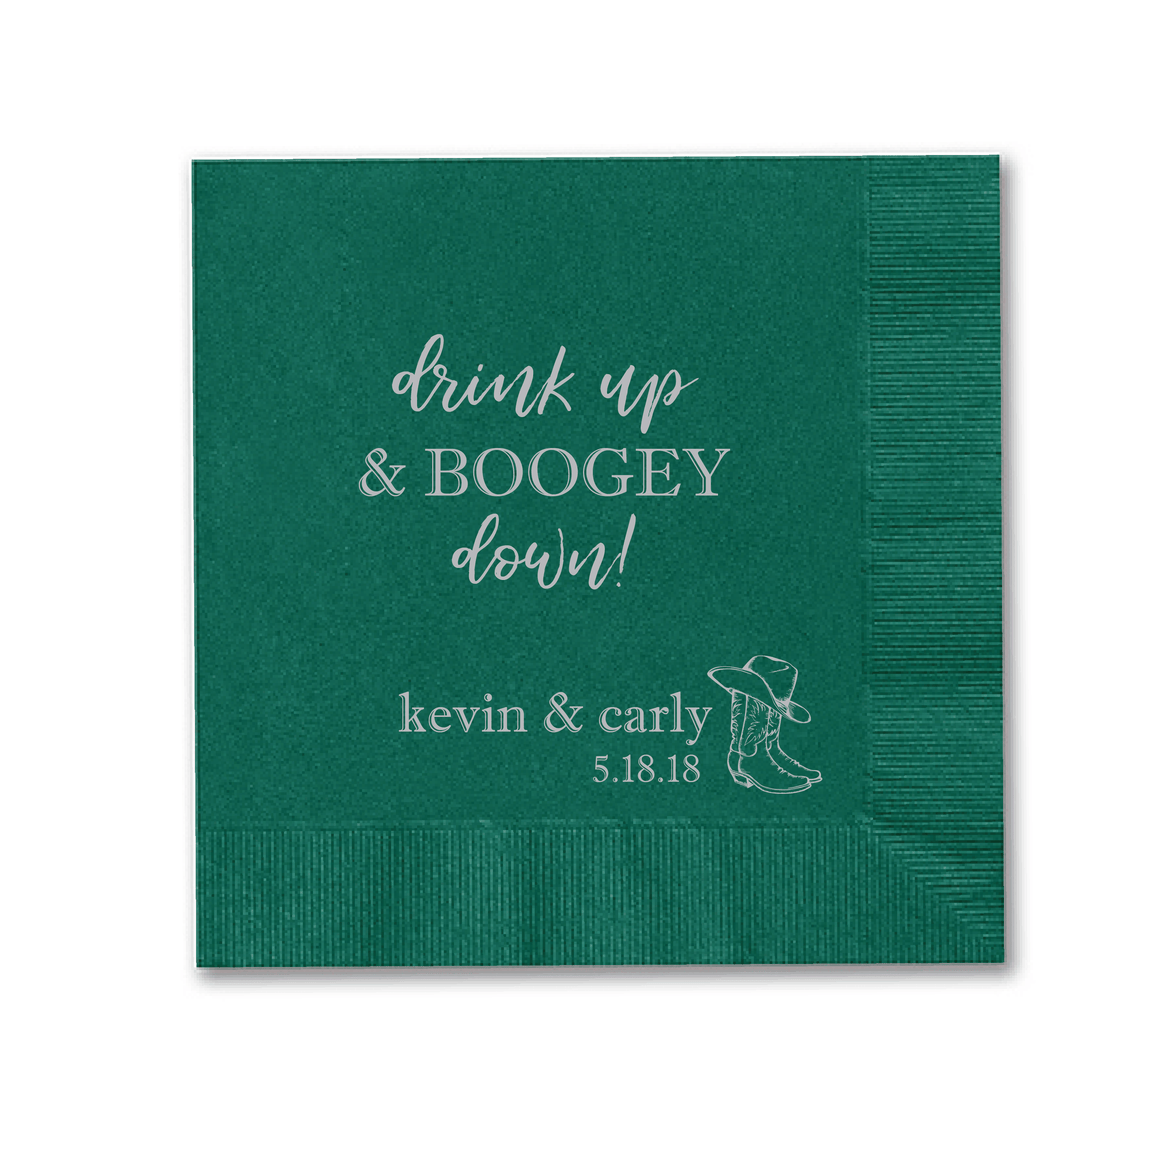 Personalized Wedding Napkin - Drink Up And Boogy Down Wedding Napkins